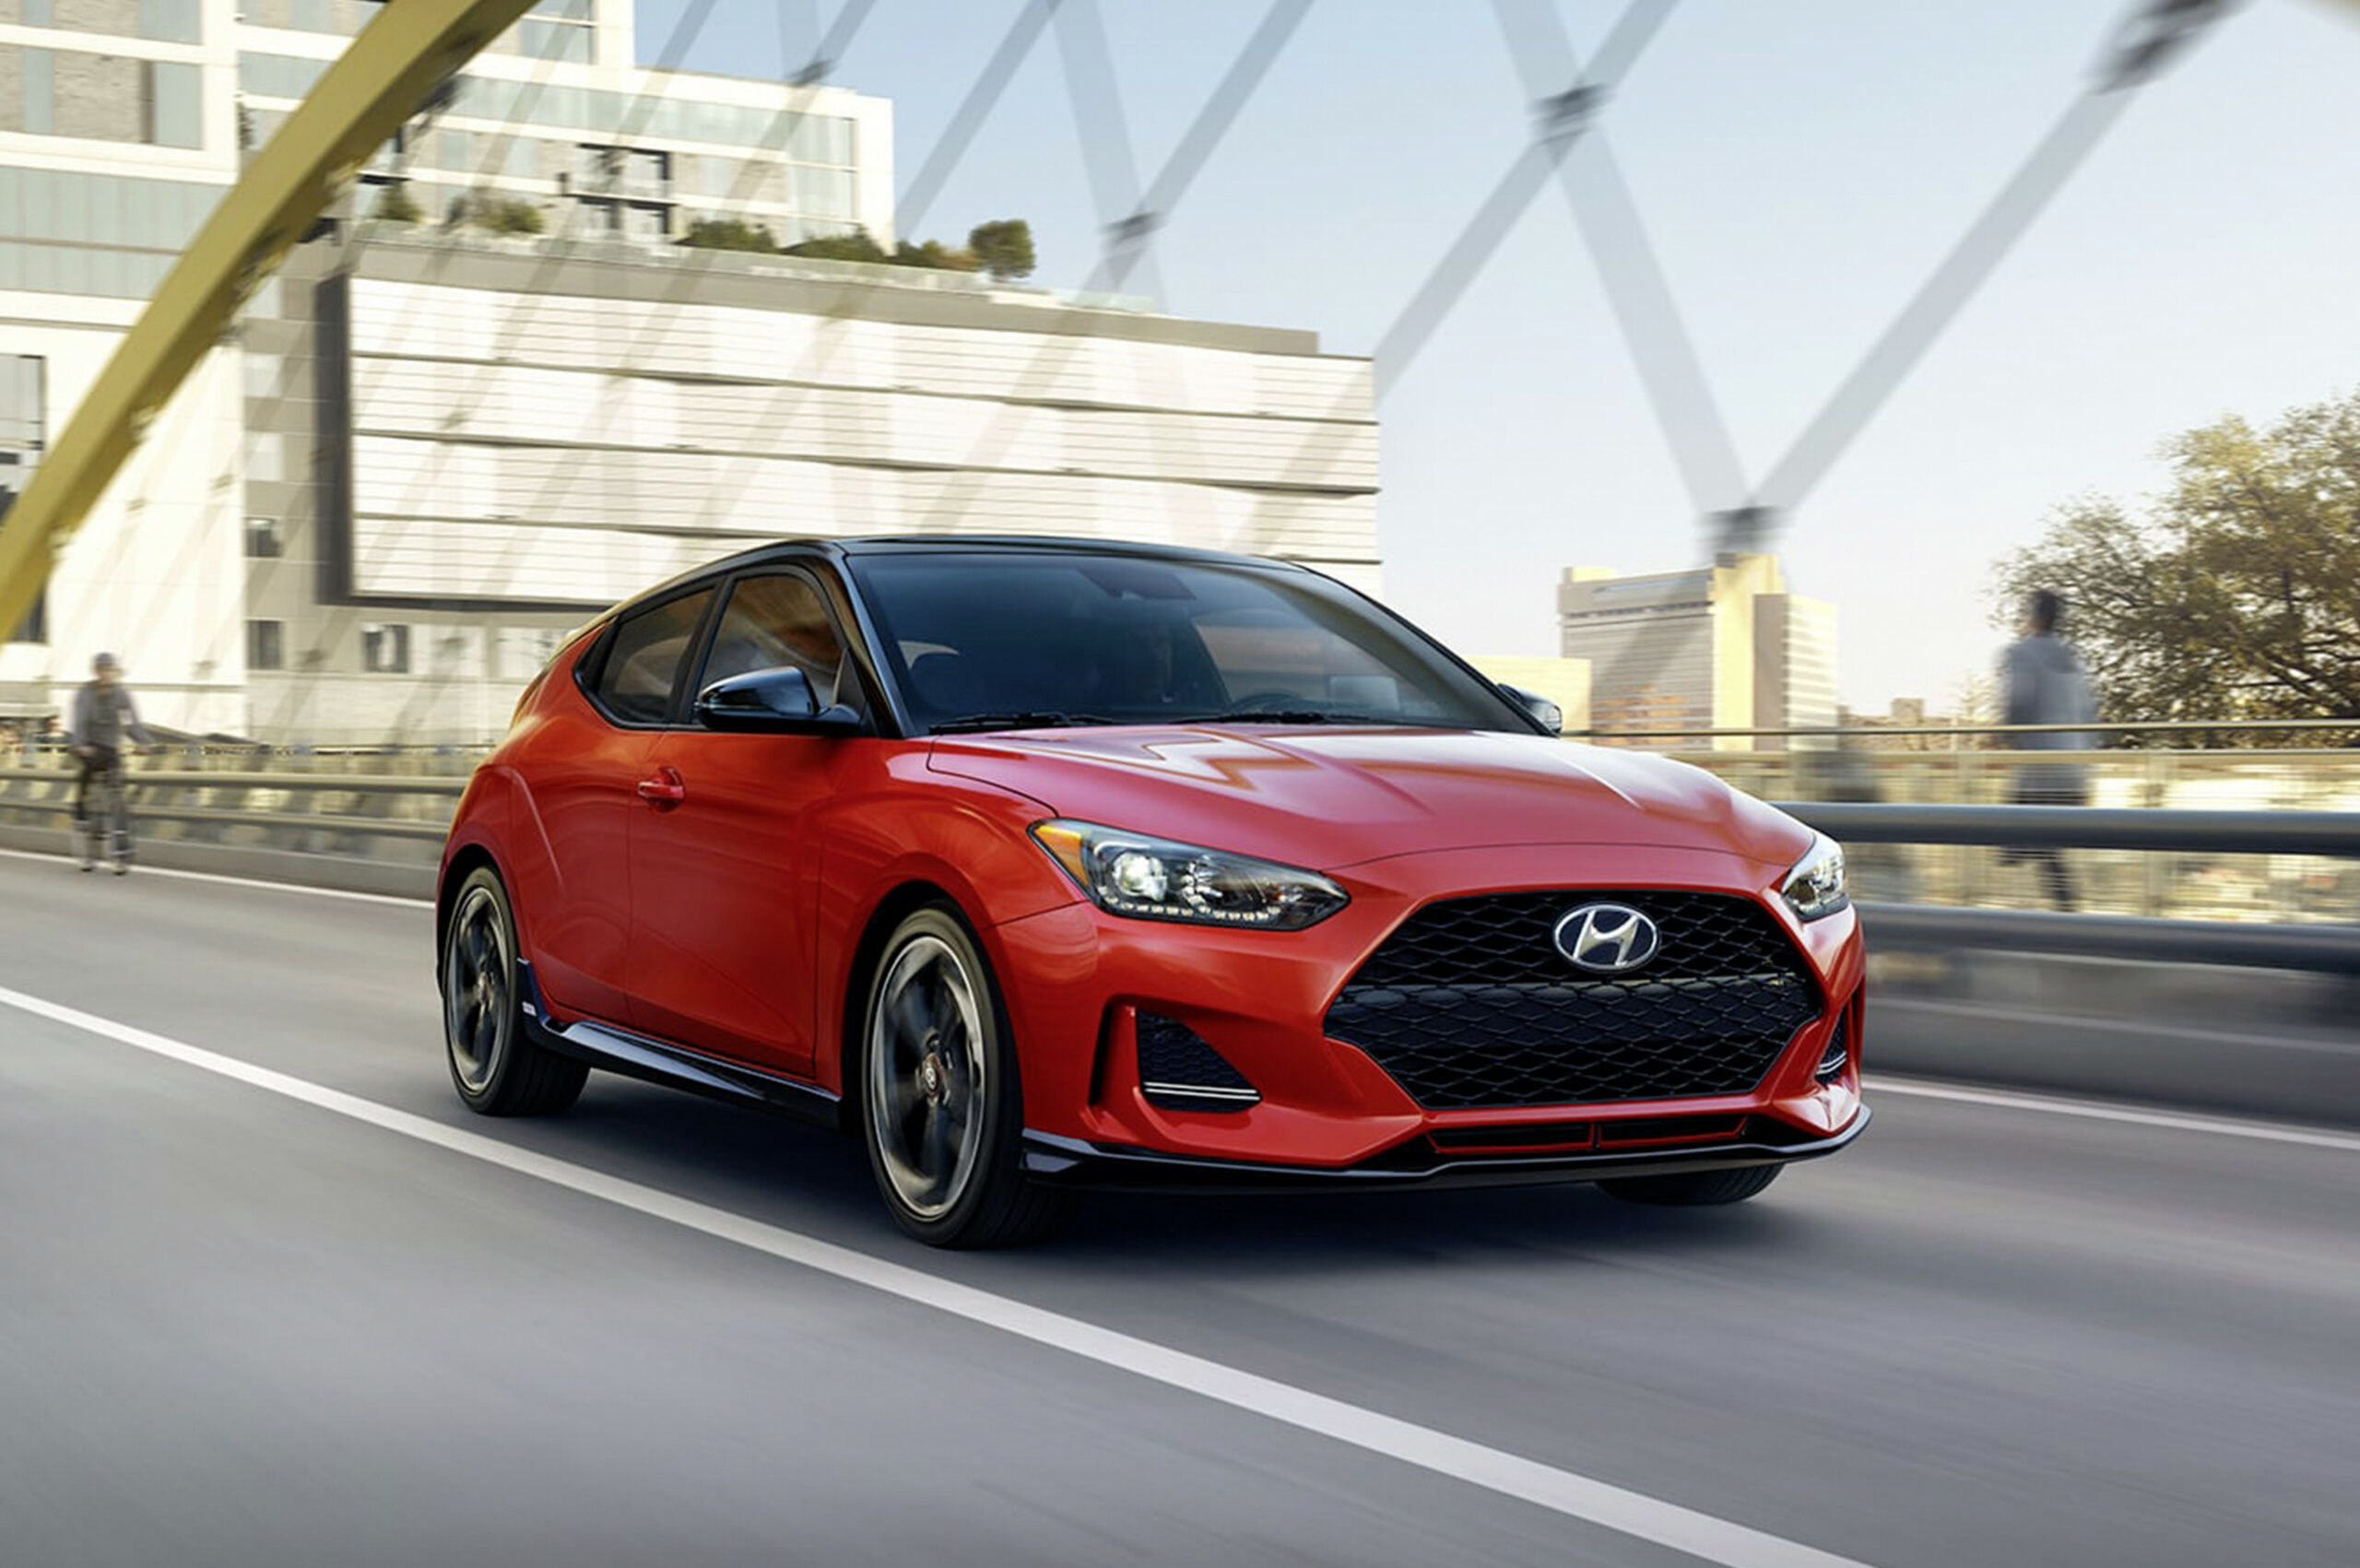 8 Hyundai Veloster Review, Pricing, and Specs | 2020 Hyundai Veloster Turbo R Spec